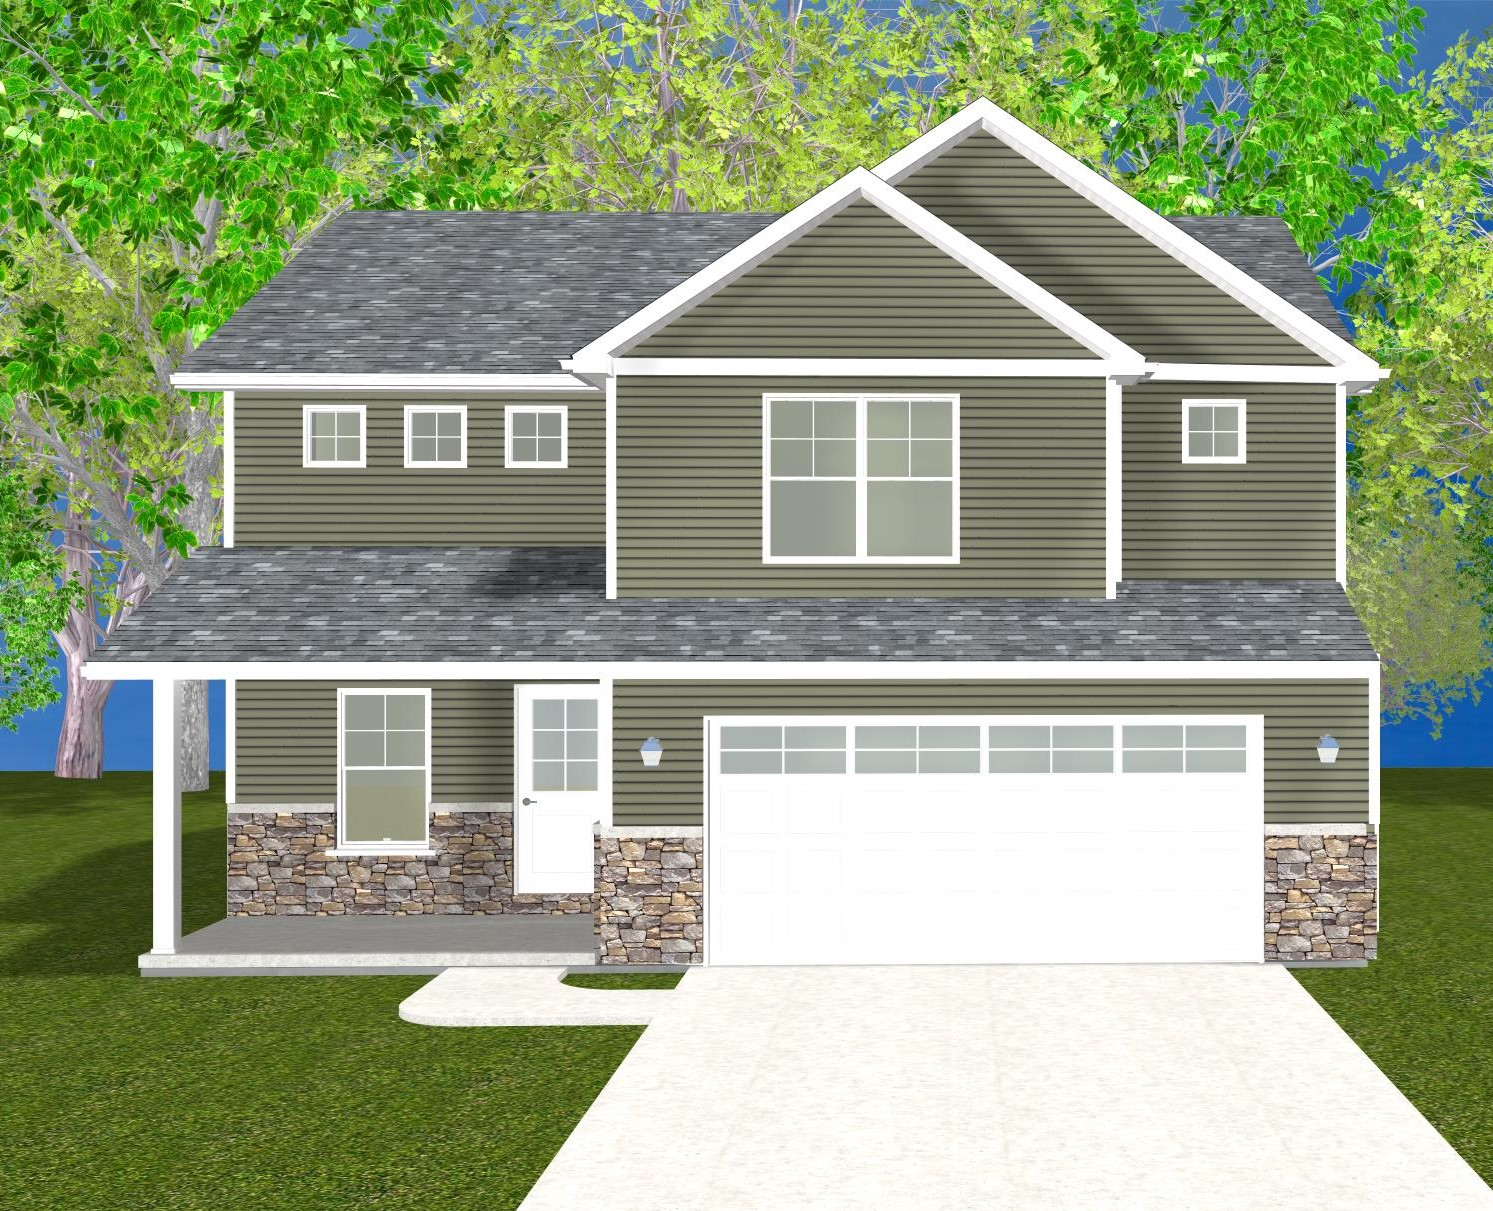 The Amelia Rose – Starting at $293,900 with Standard Lot